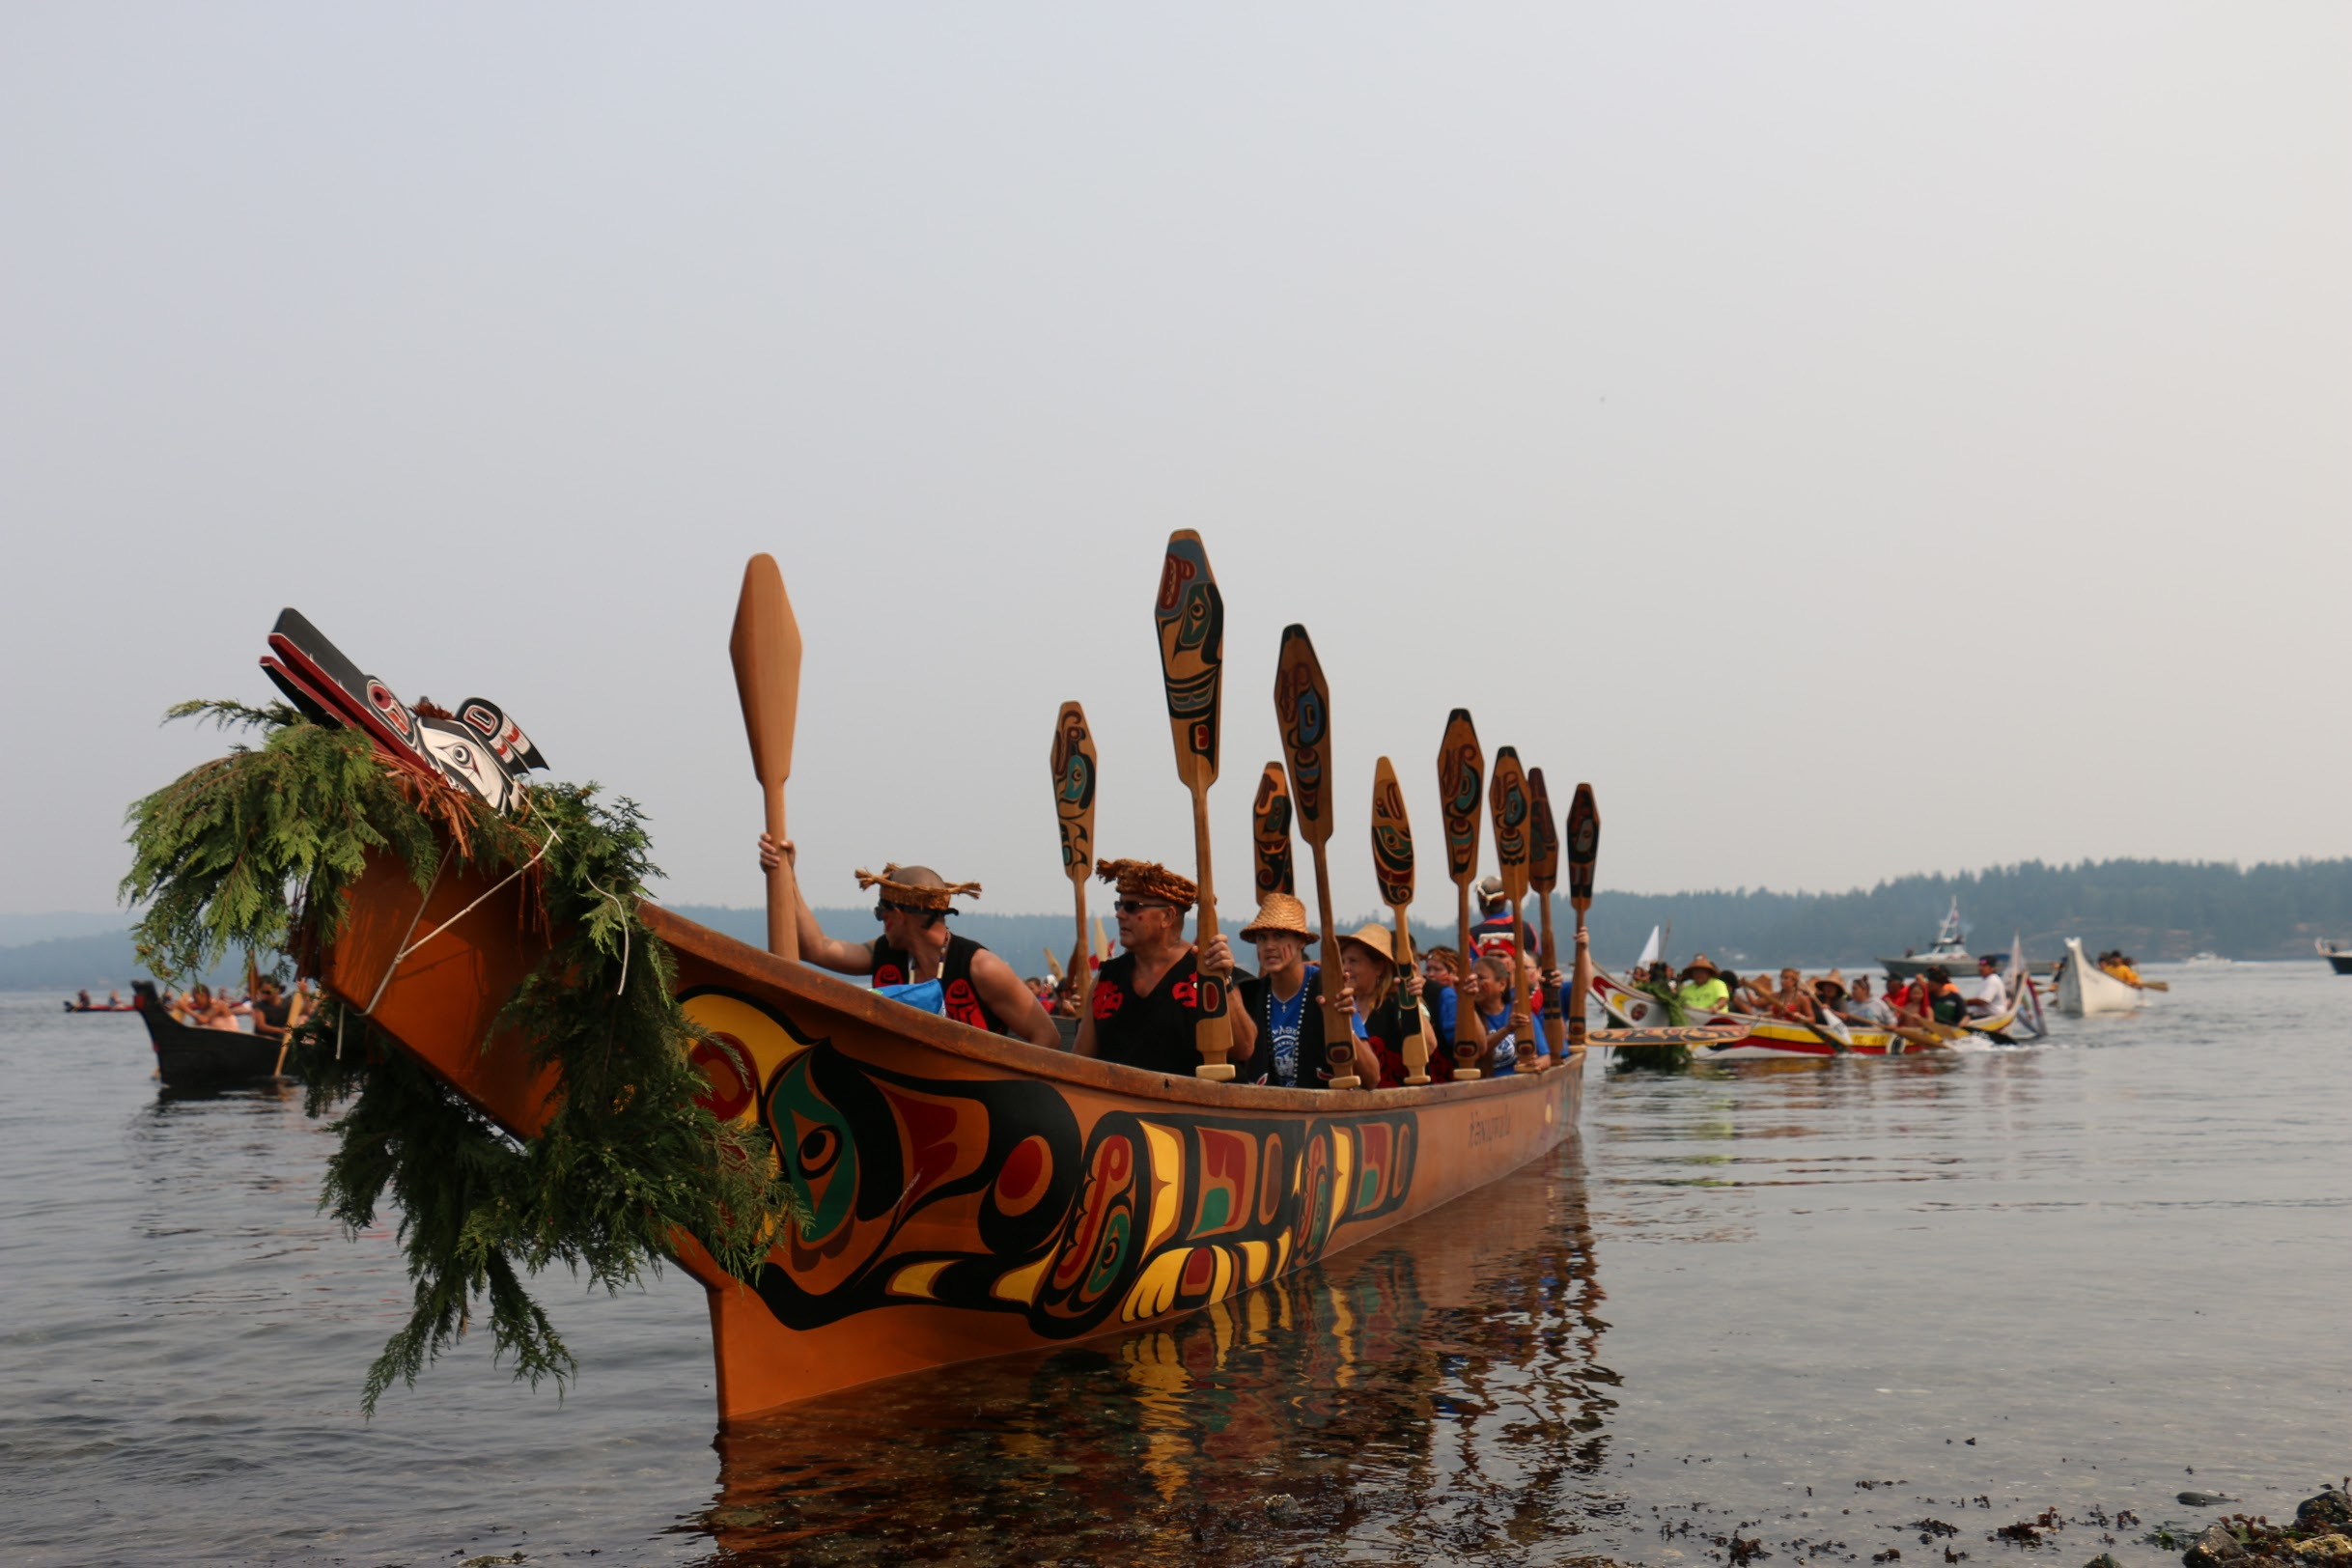 A canoe representing the Wei Wai Kum Nation leads canoes ashore at Tyee Spit near Campbell River, B.C., on August 5, 2017. (Julian Brave NoiseCat)